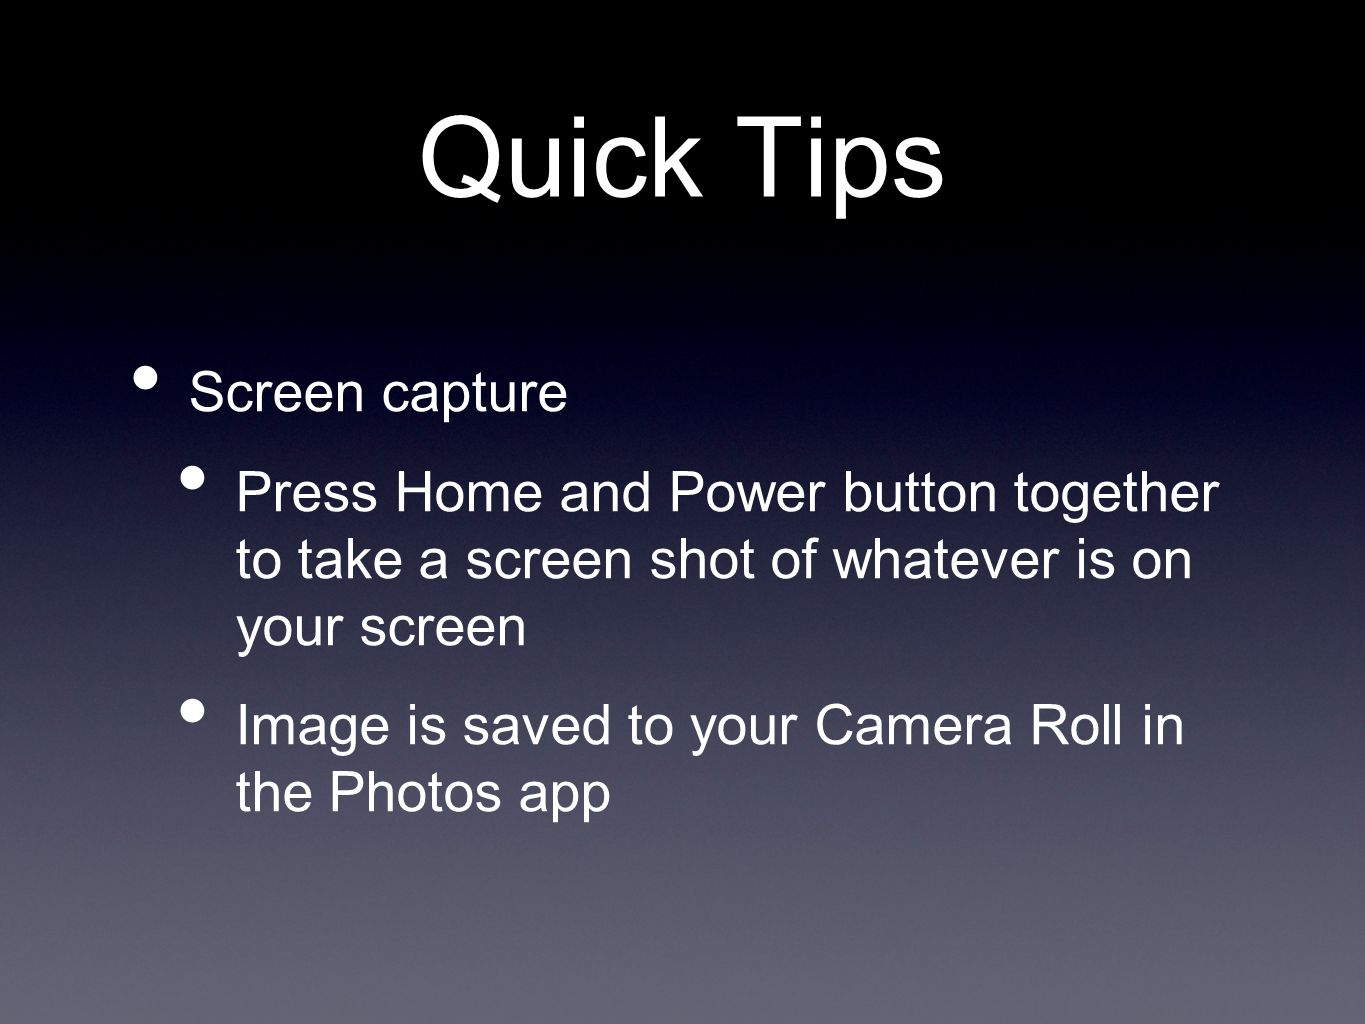 Quick Tips Screen capture Press Home and Power button together to take a screen shot of whatever is on your screen Image is saved to your Camera Roll in the Photos app